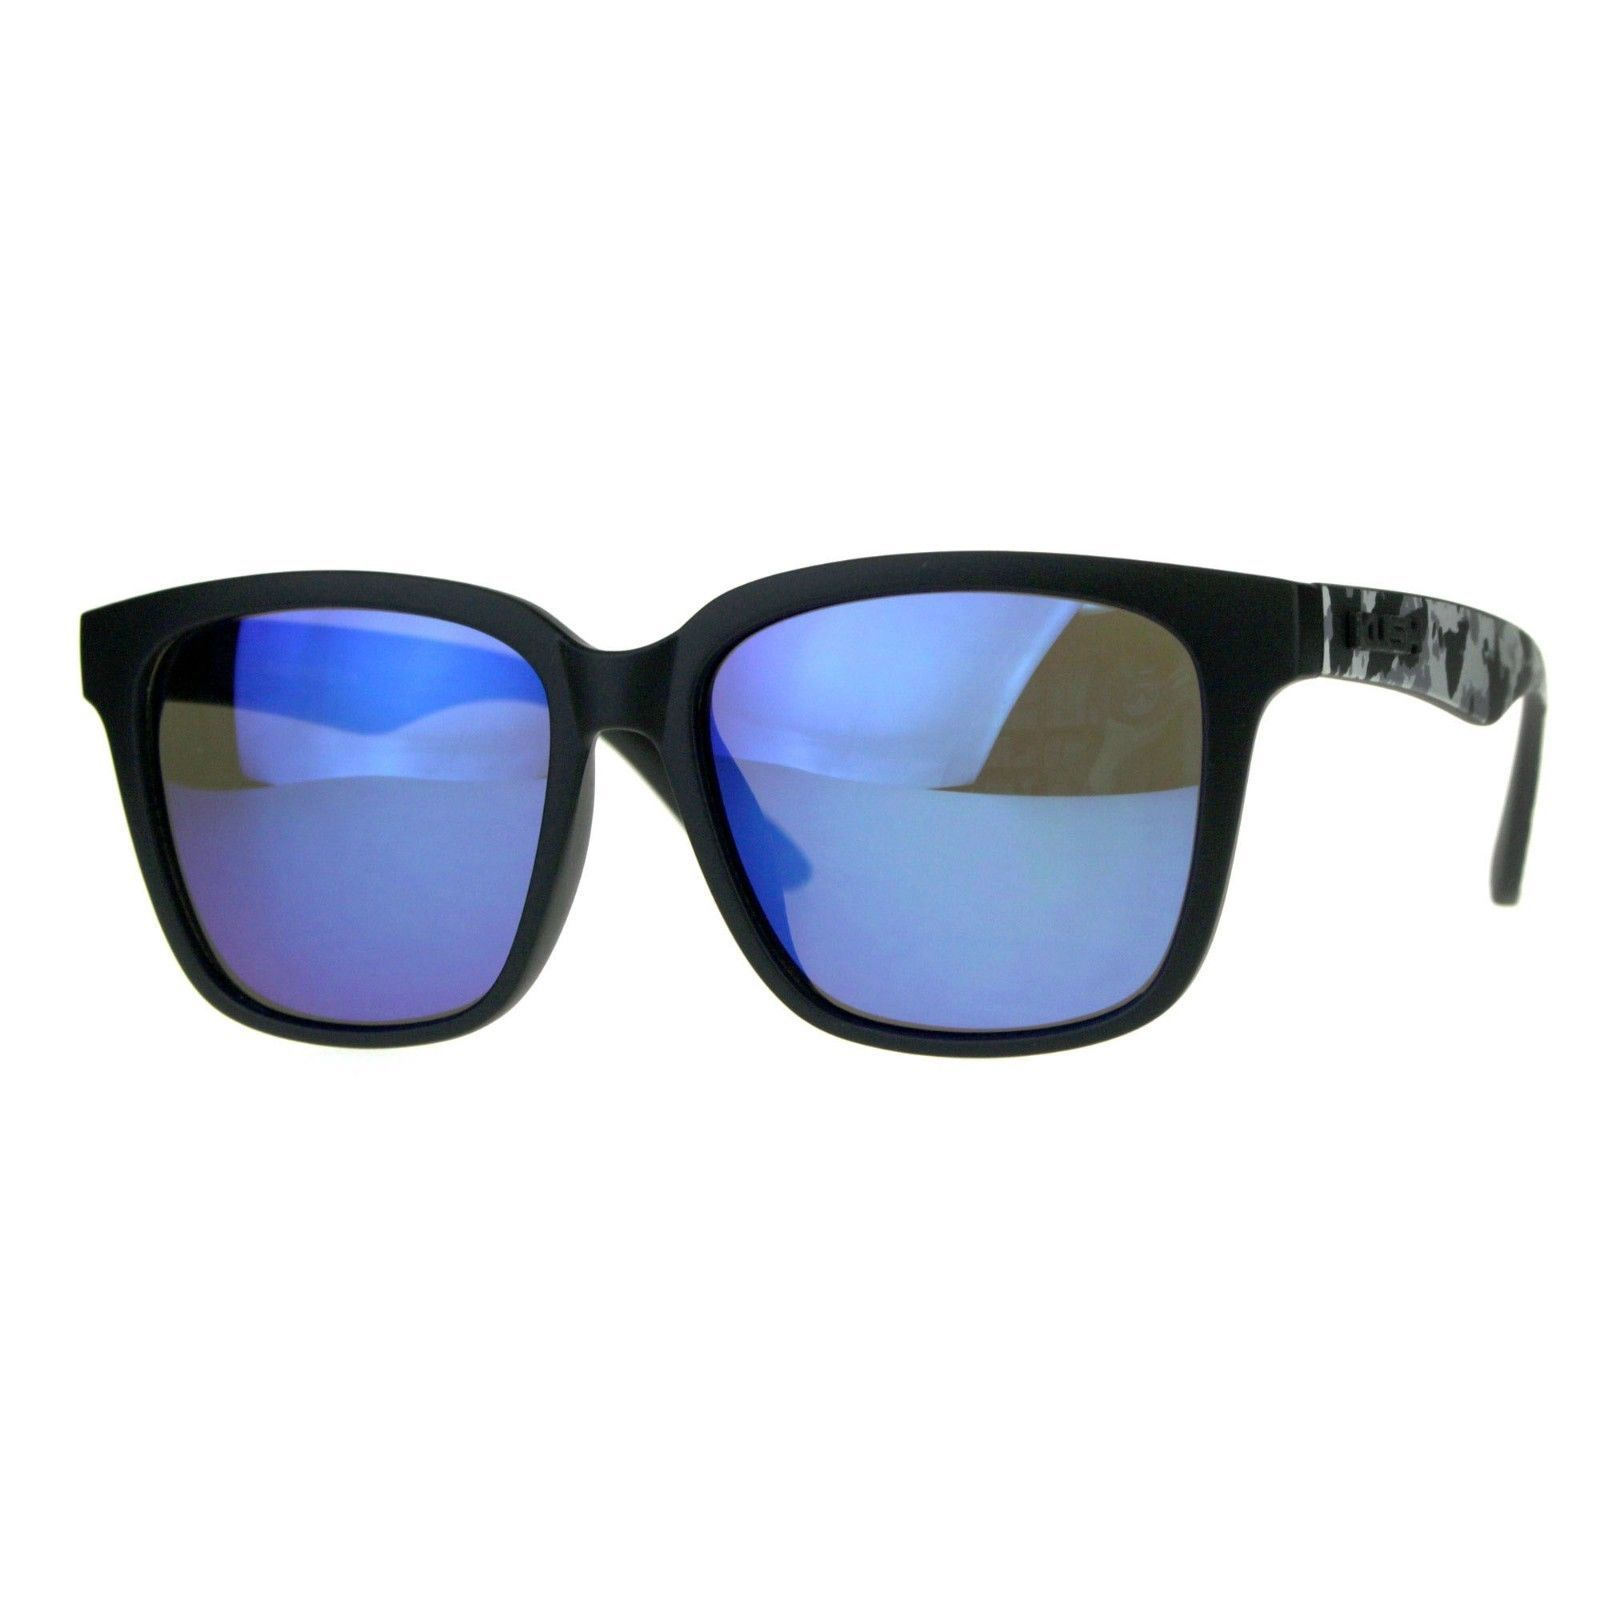 ce921c92d S l1600. S l1600. Previous. KUSH Sunglasses Unisex Black Square Frame  Mirrored Lens UV 400 · KUSH Sunglasses ...